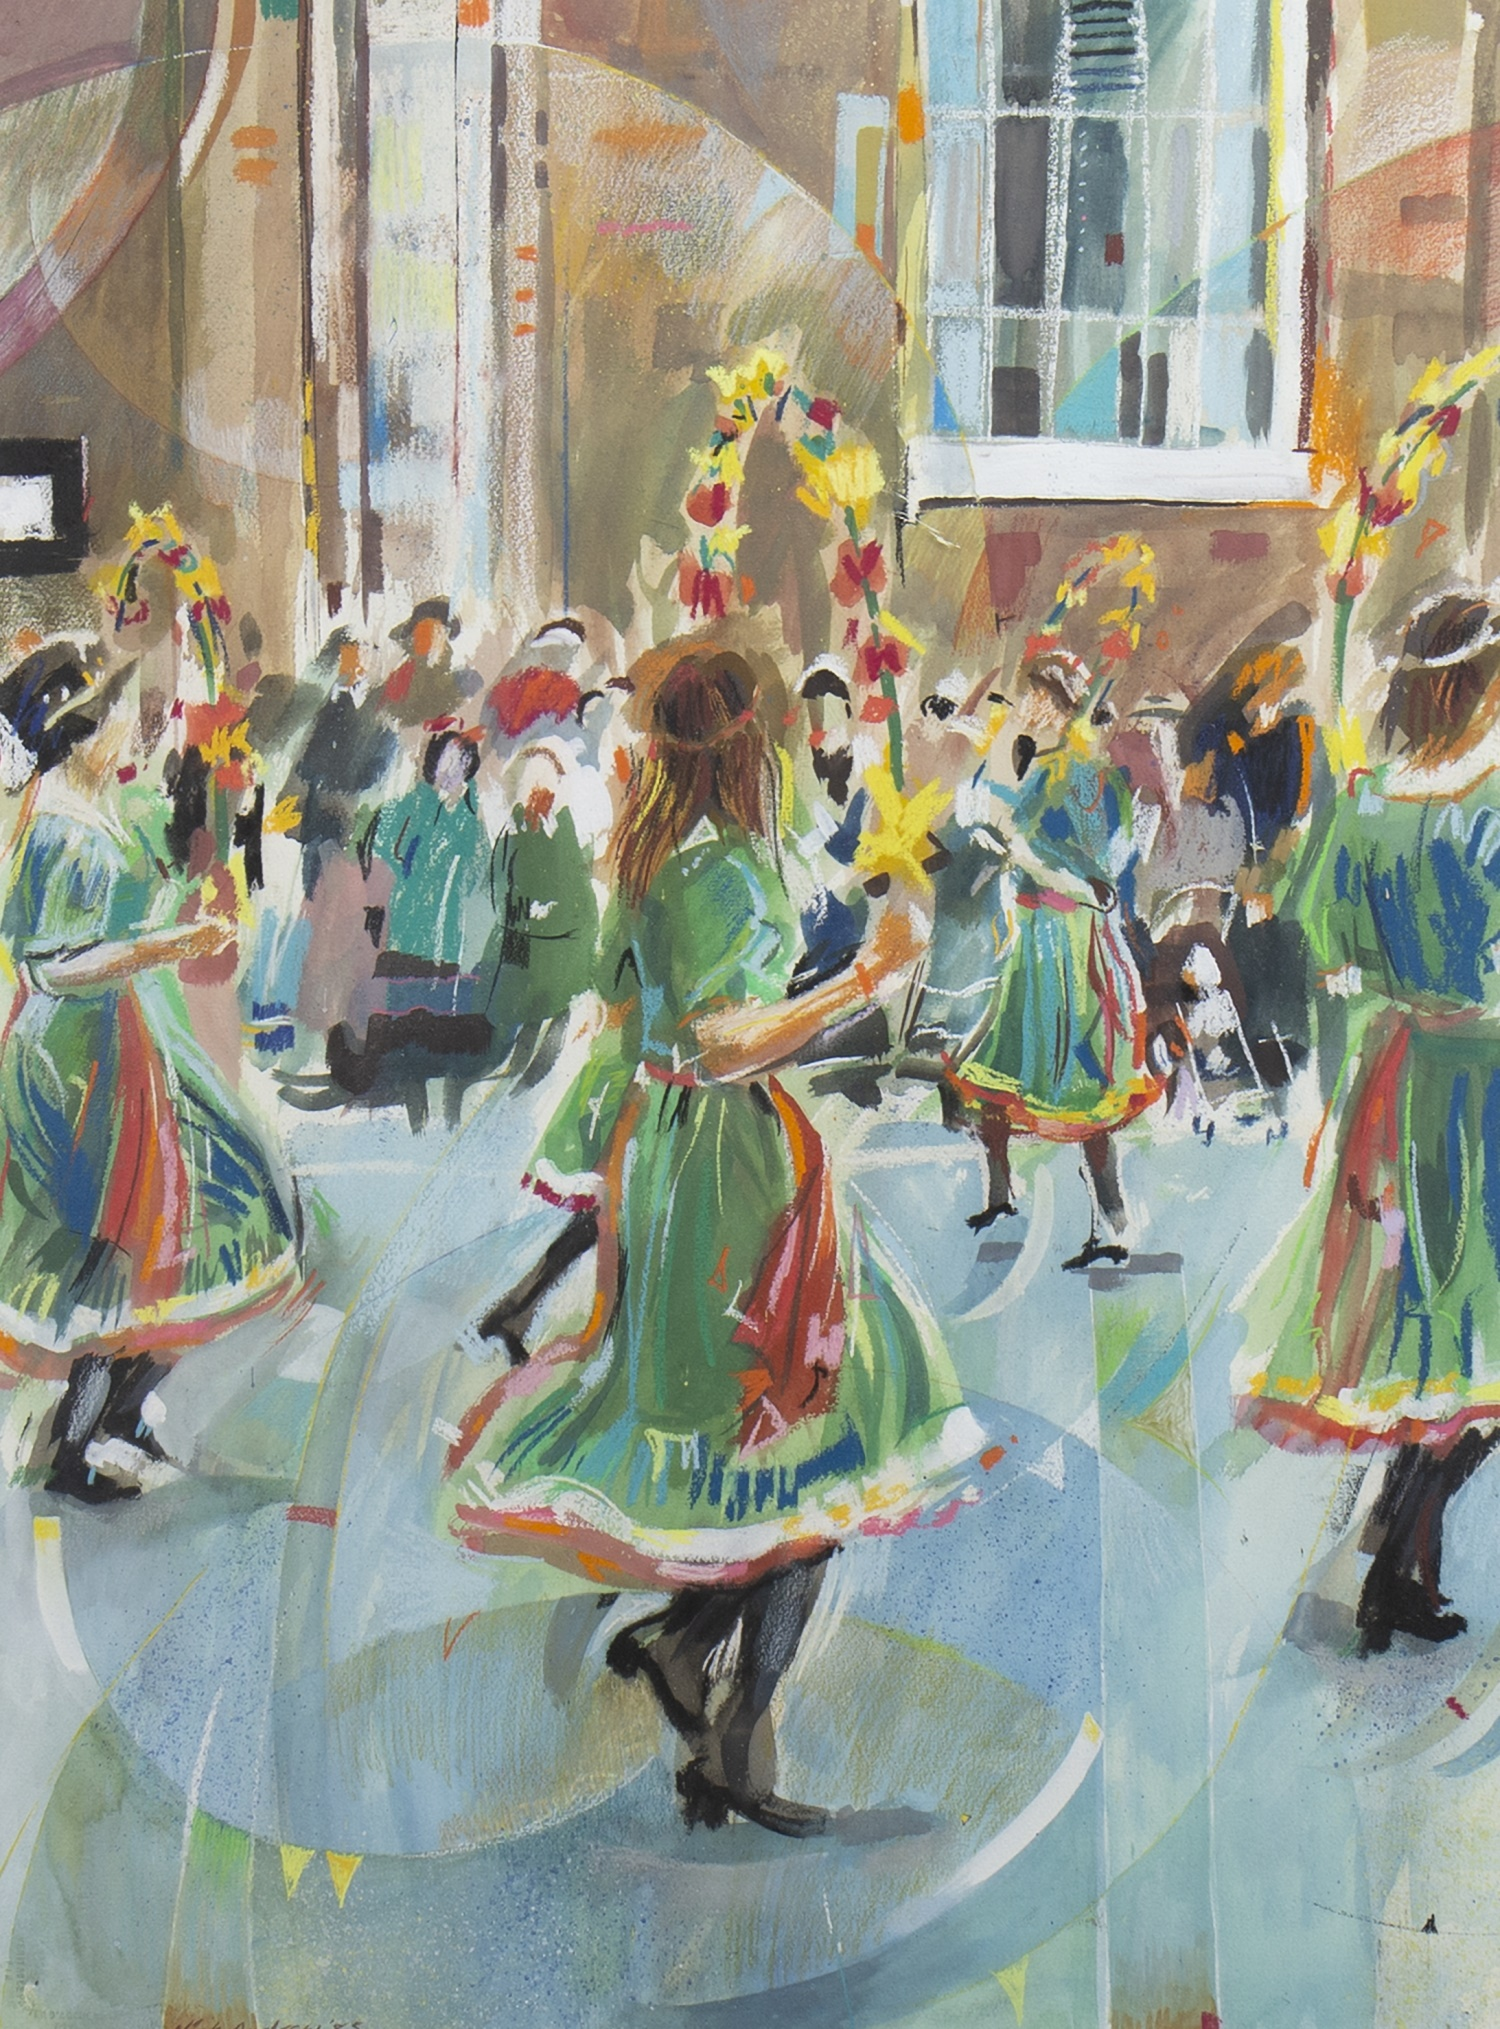 STREET DANCERS, A MIXED MEDIA BY NICK ANDREWS - Image 2 of 2